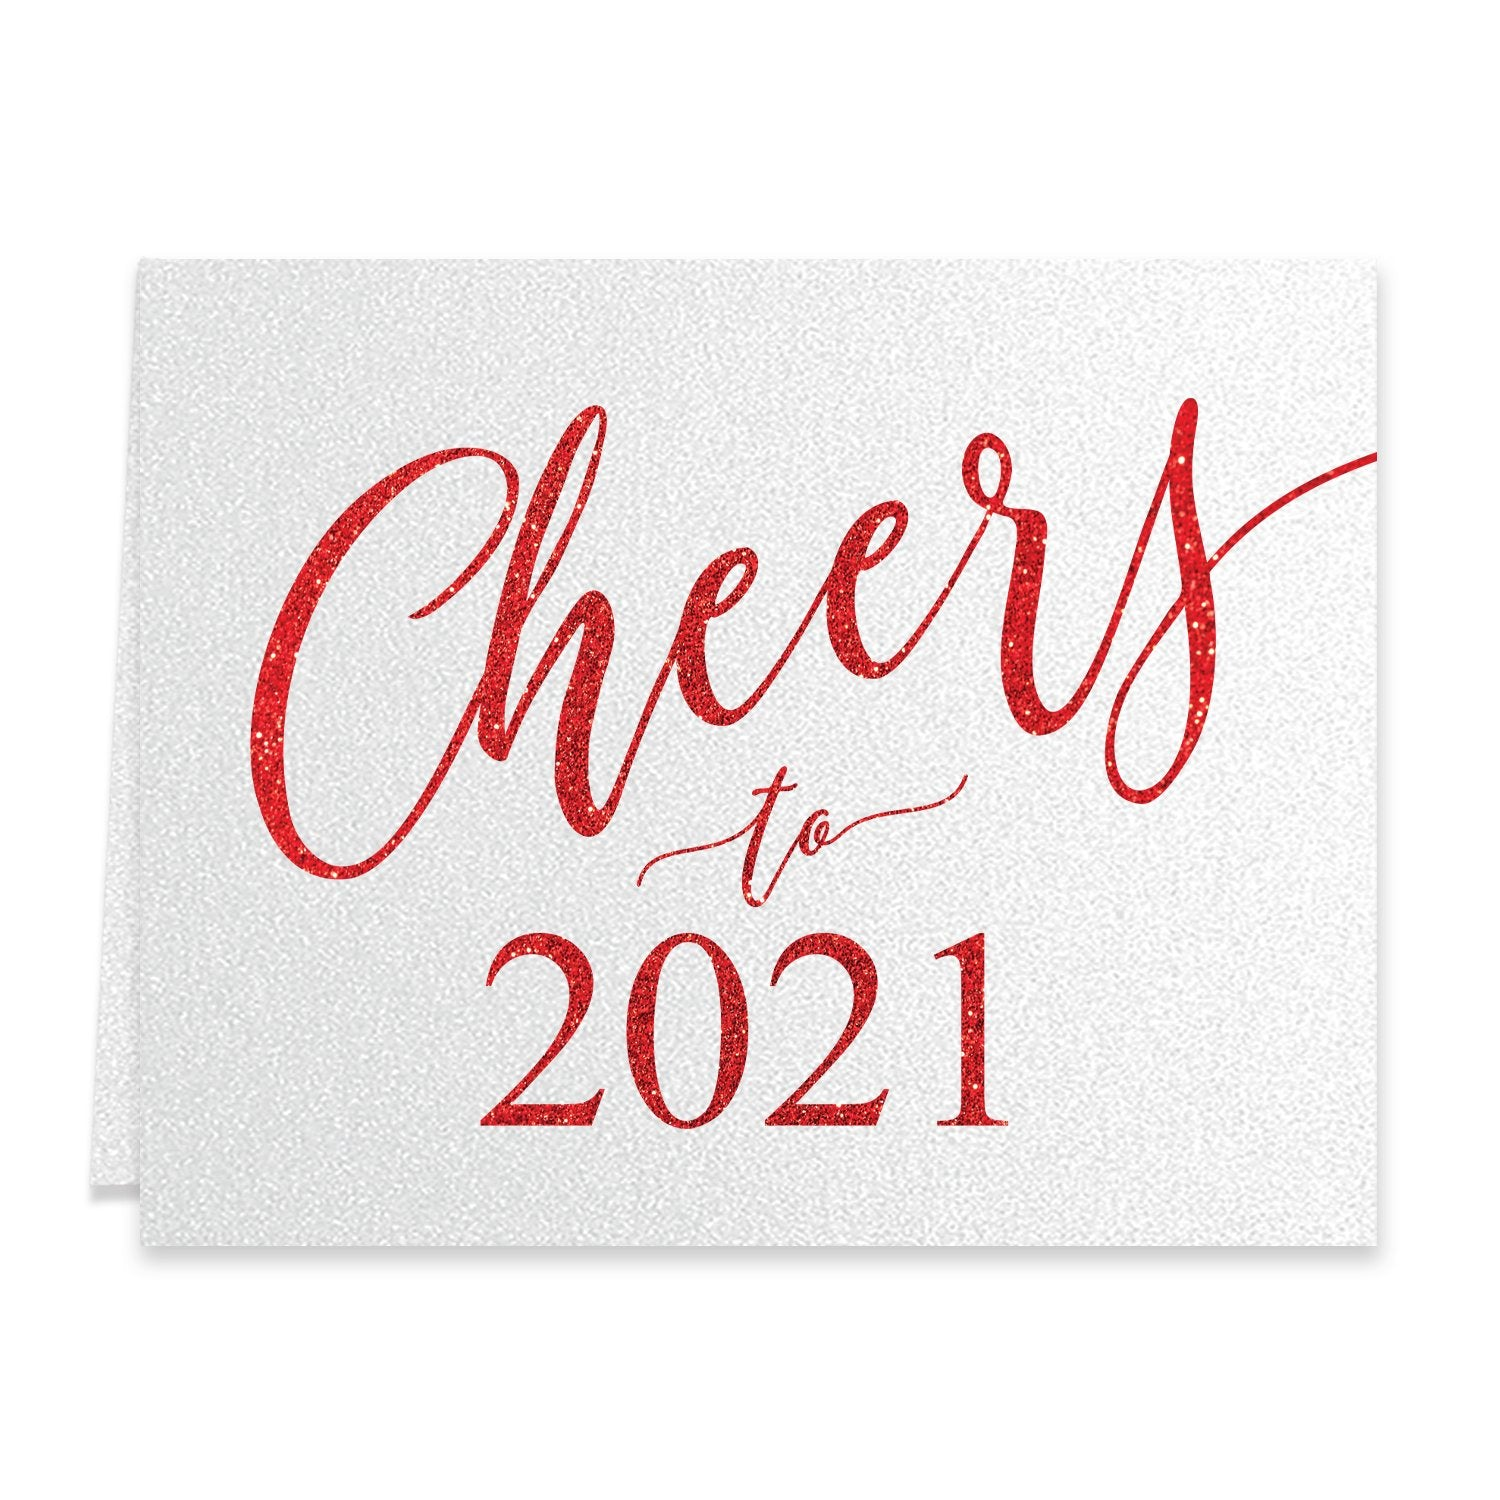 Cheers to 2021 New Years Greeting Card - Digibuddha